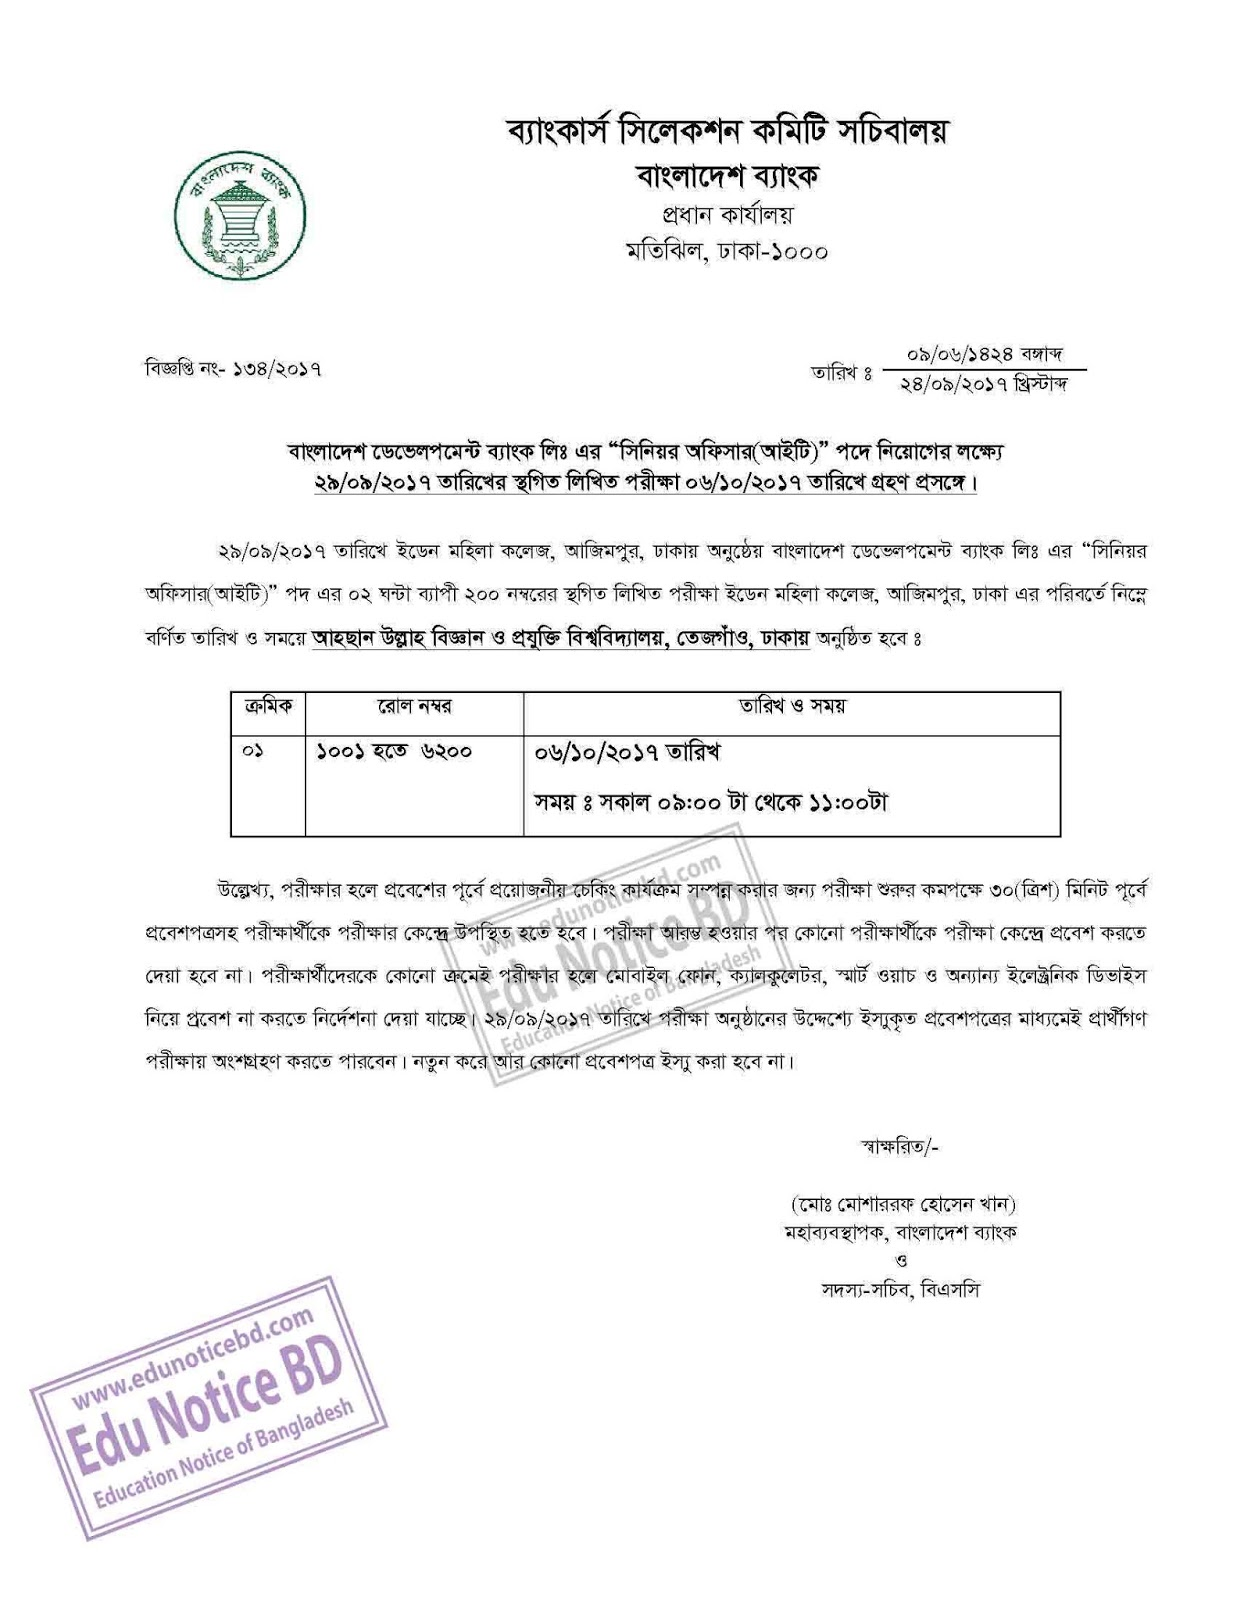 Bangladesh Development Bank www.bdbl.com.bd - MCQ Exam Notice